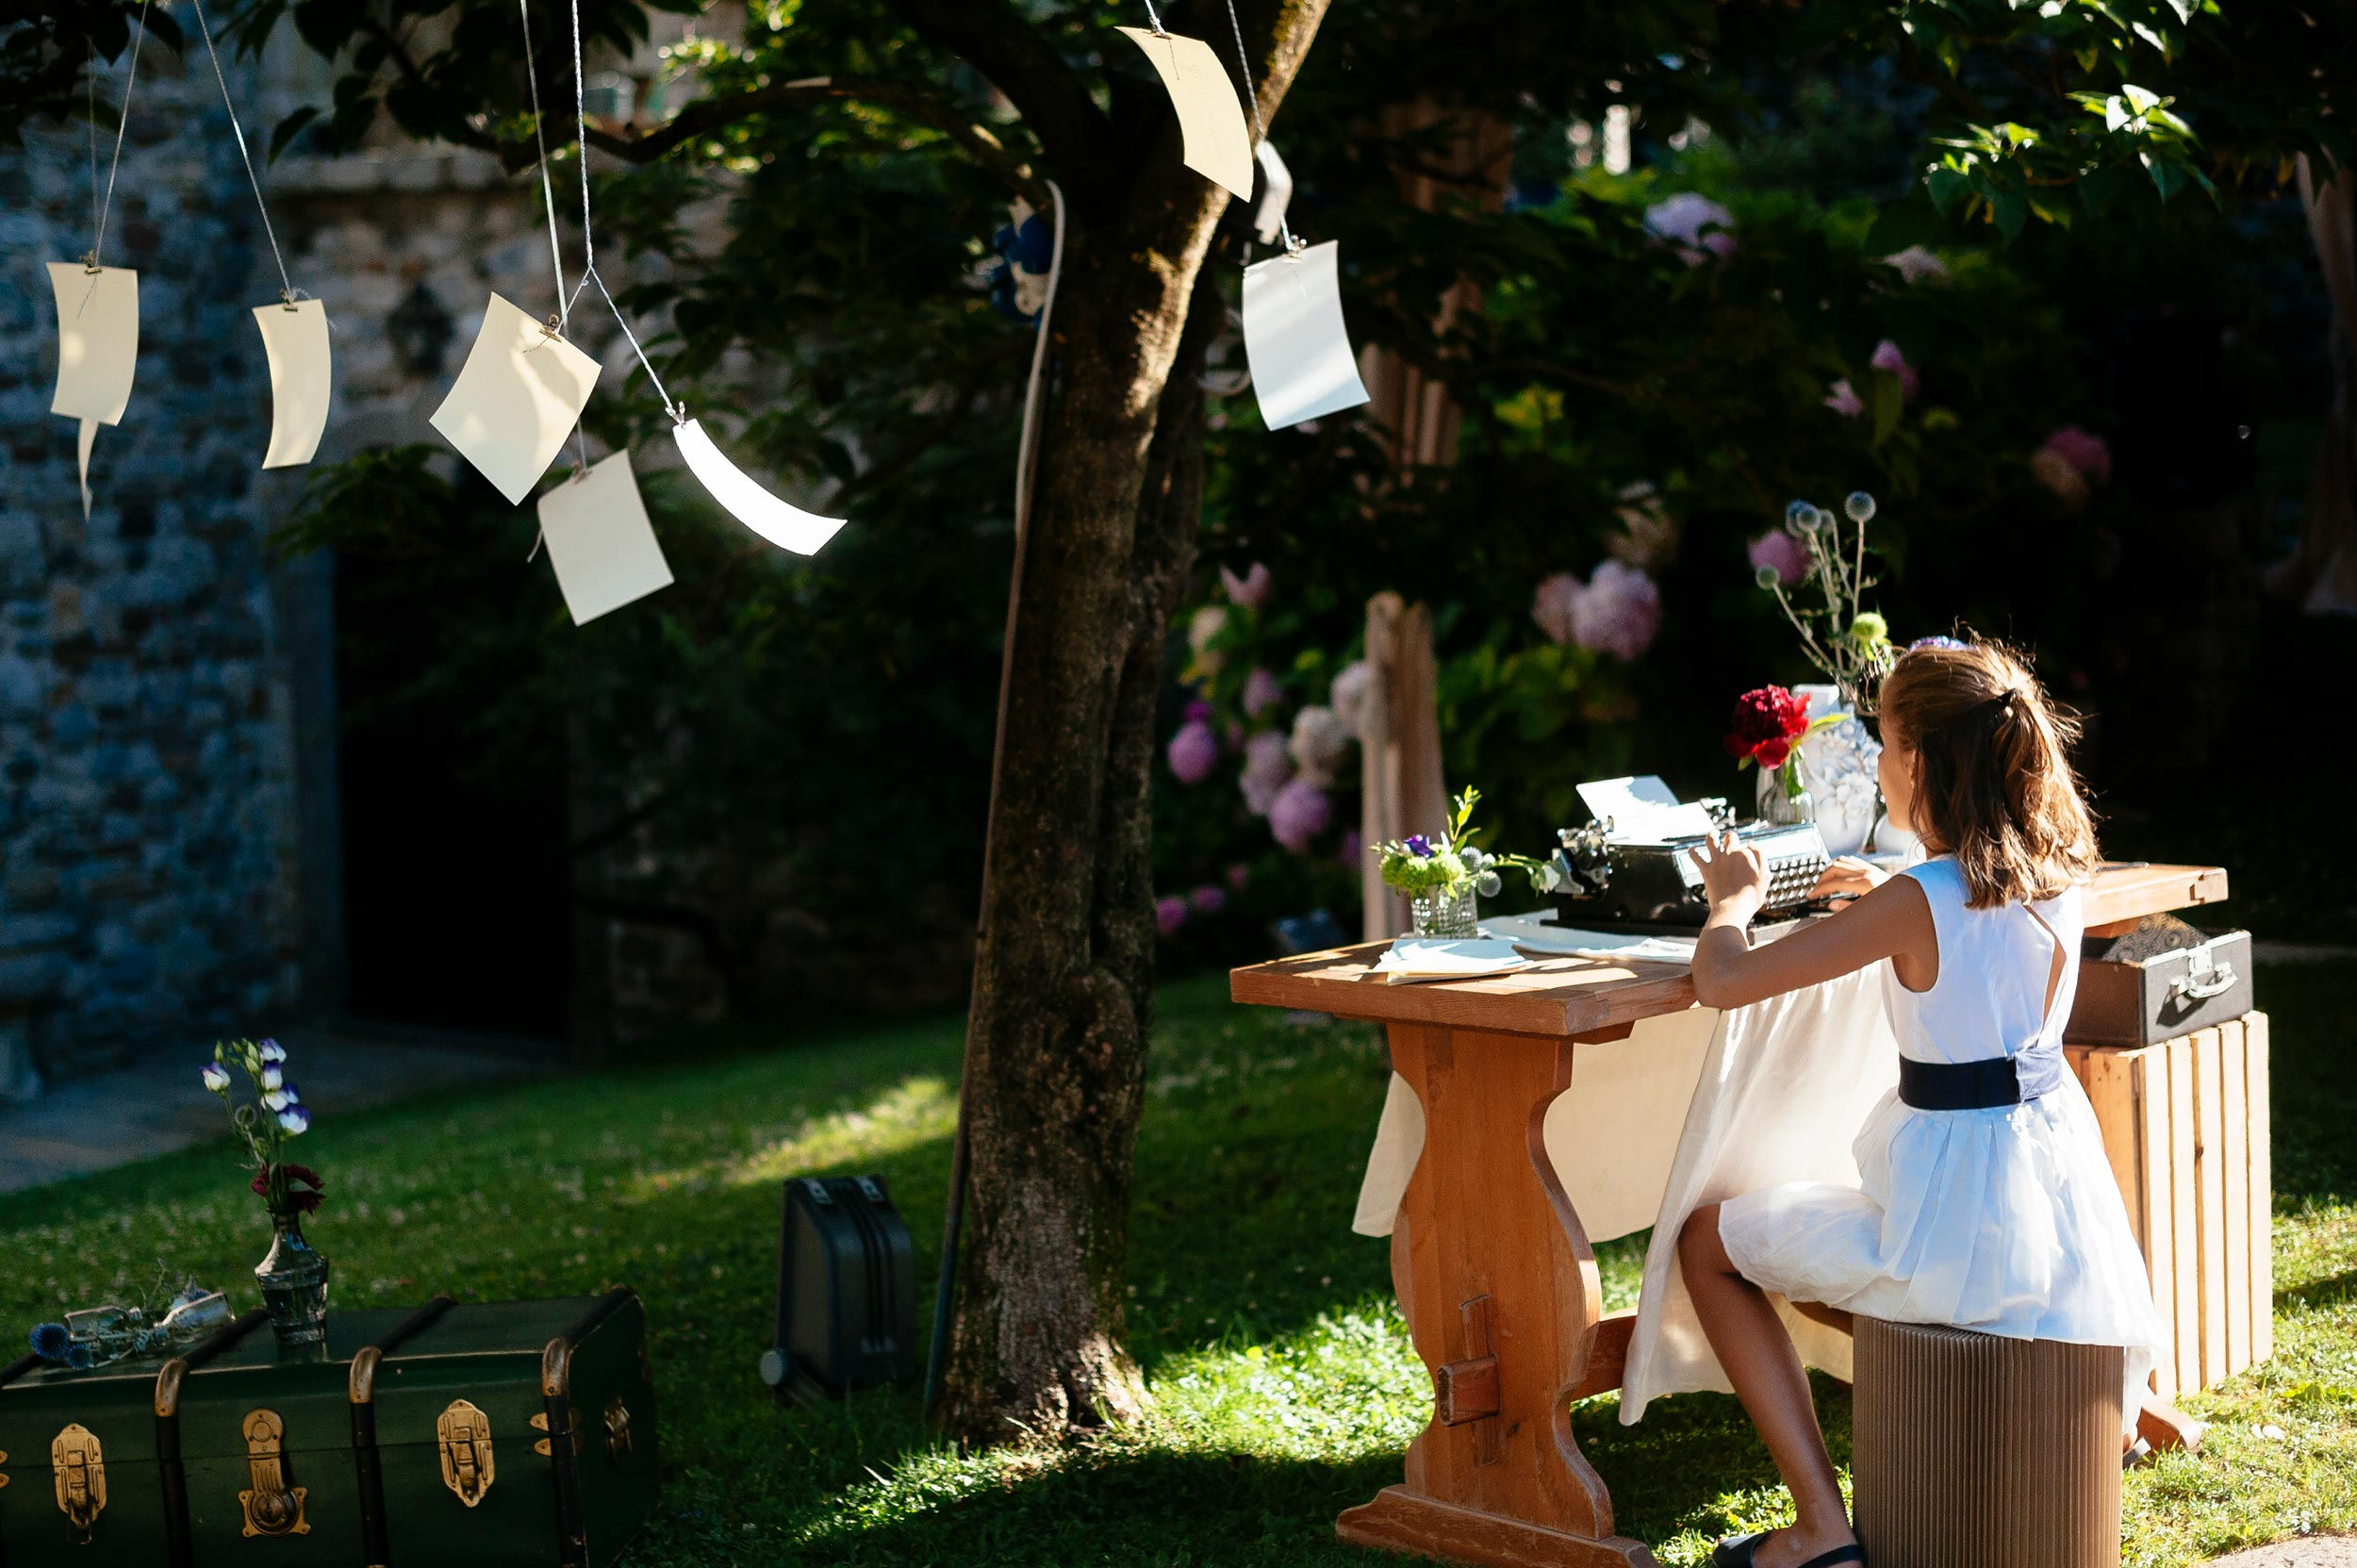 girl-using-typewriter-during-wedding-reception-in-italy-paper-sheets-flow-with-the-wind.jpg